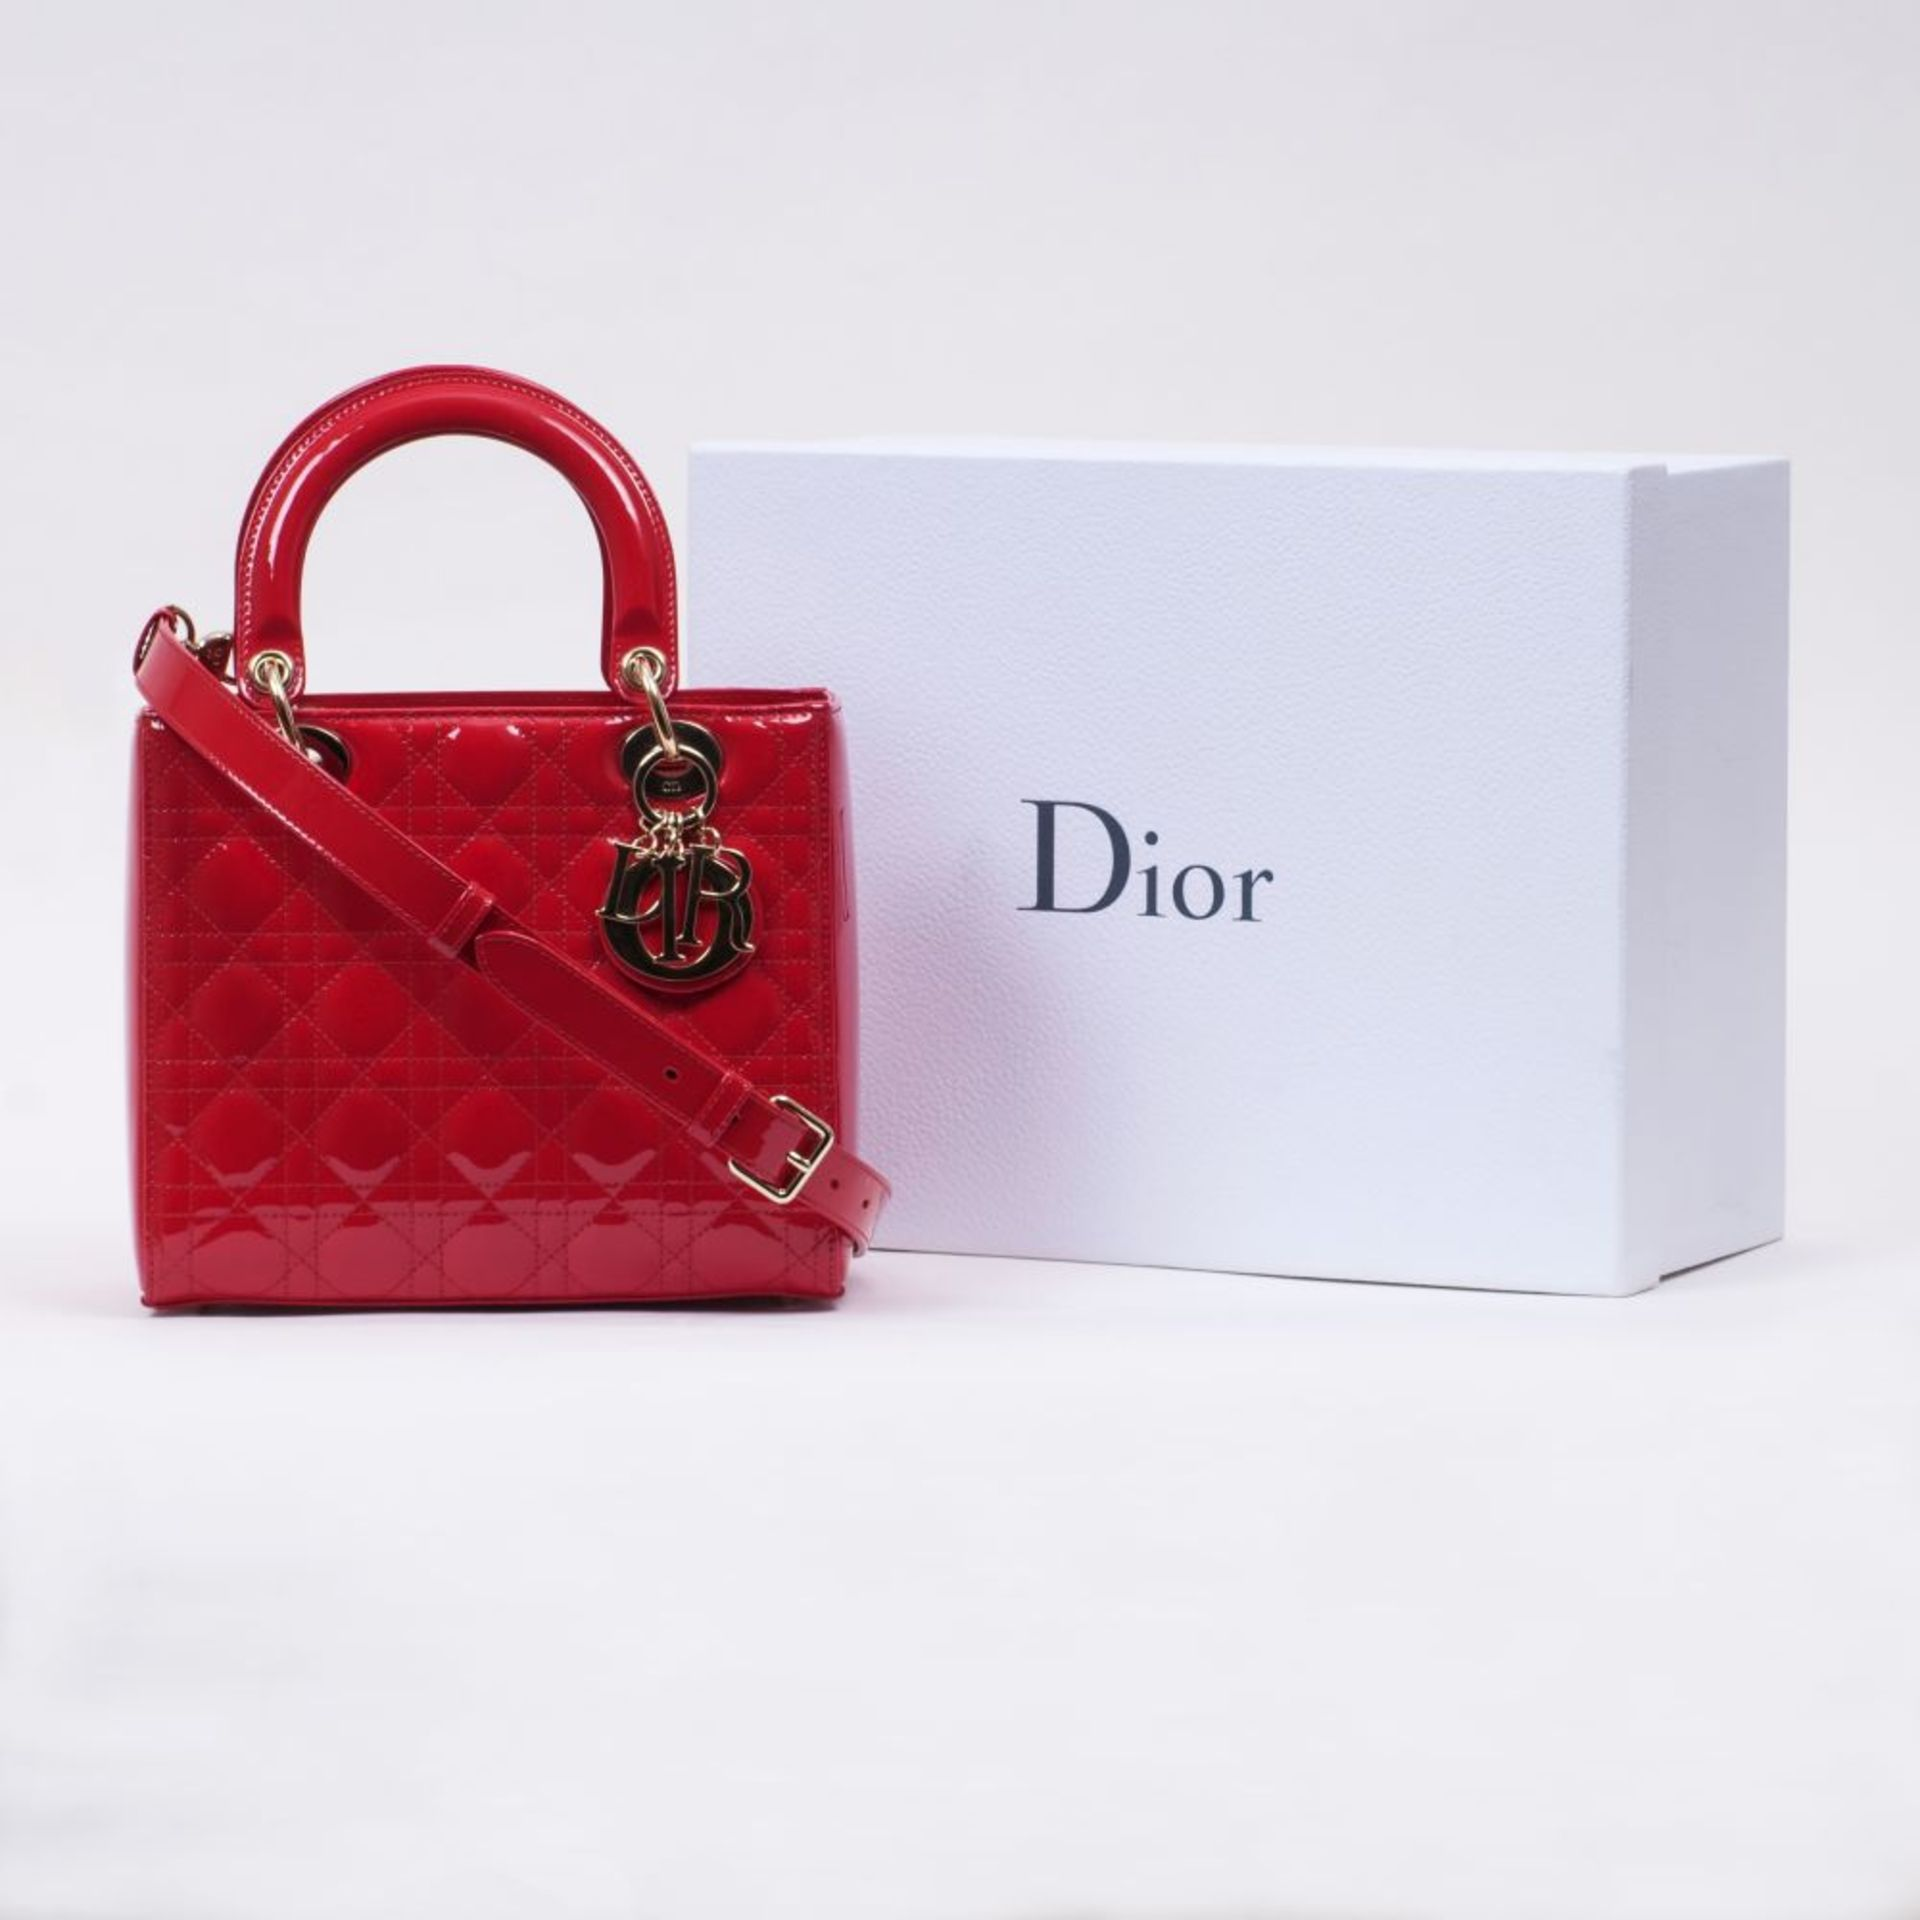 Christian Dior. Lady Dior Bag Kirschrot. - Image 2 of 2